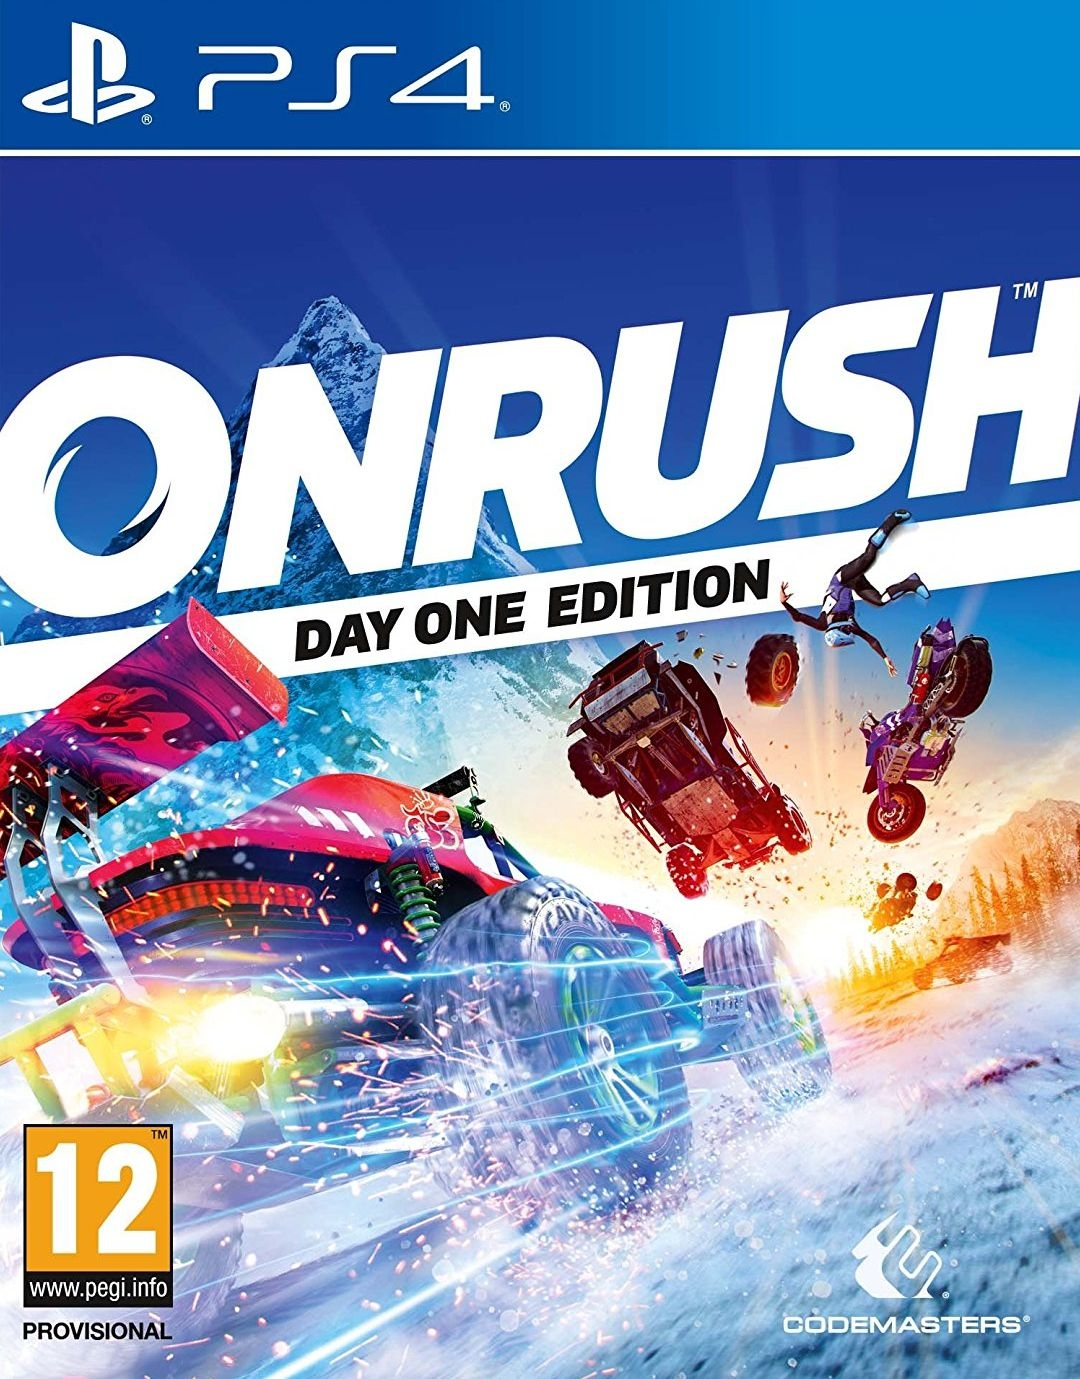 PS4 Onrush Day One Edition